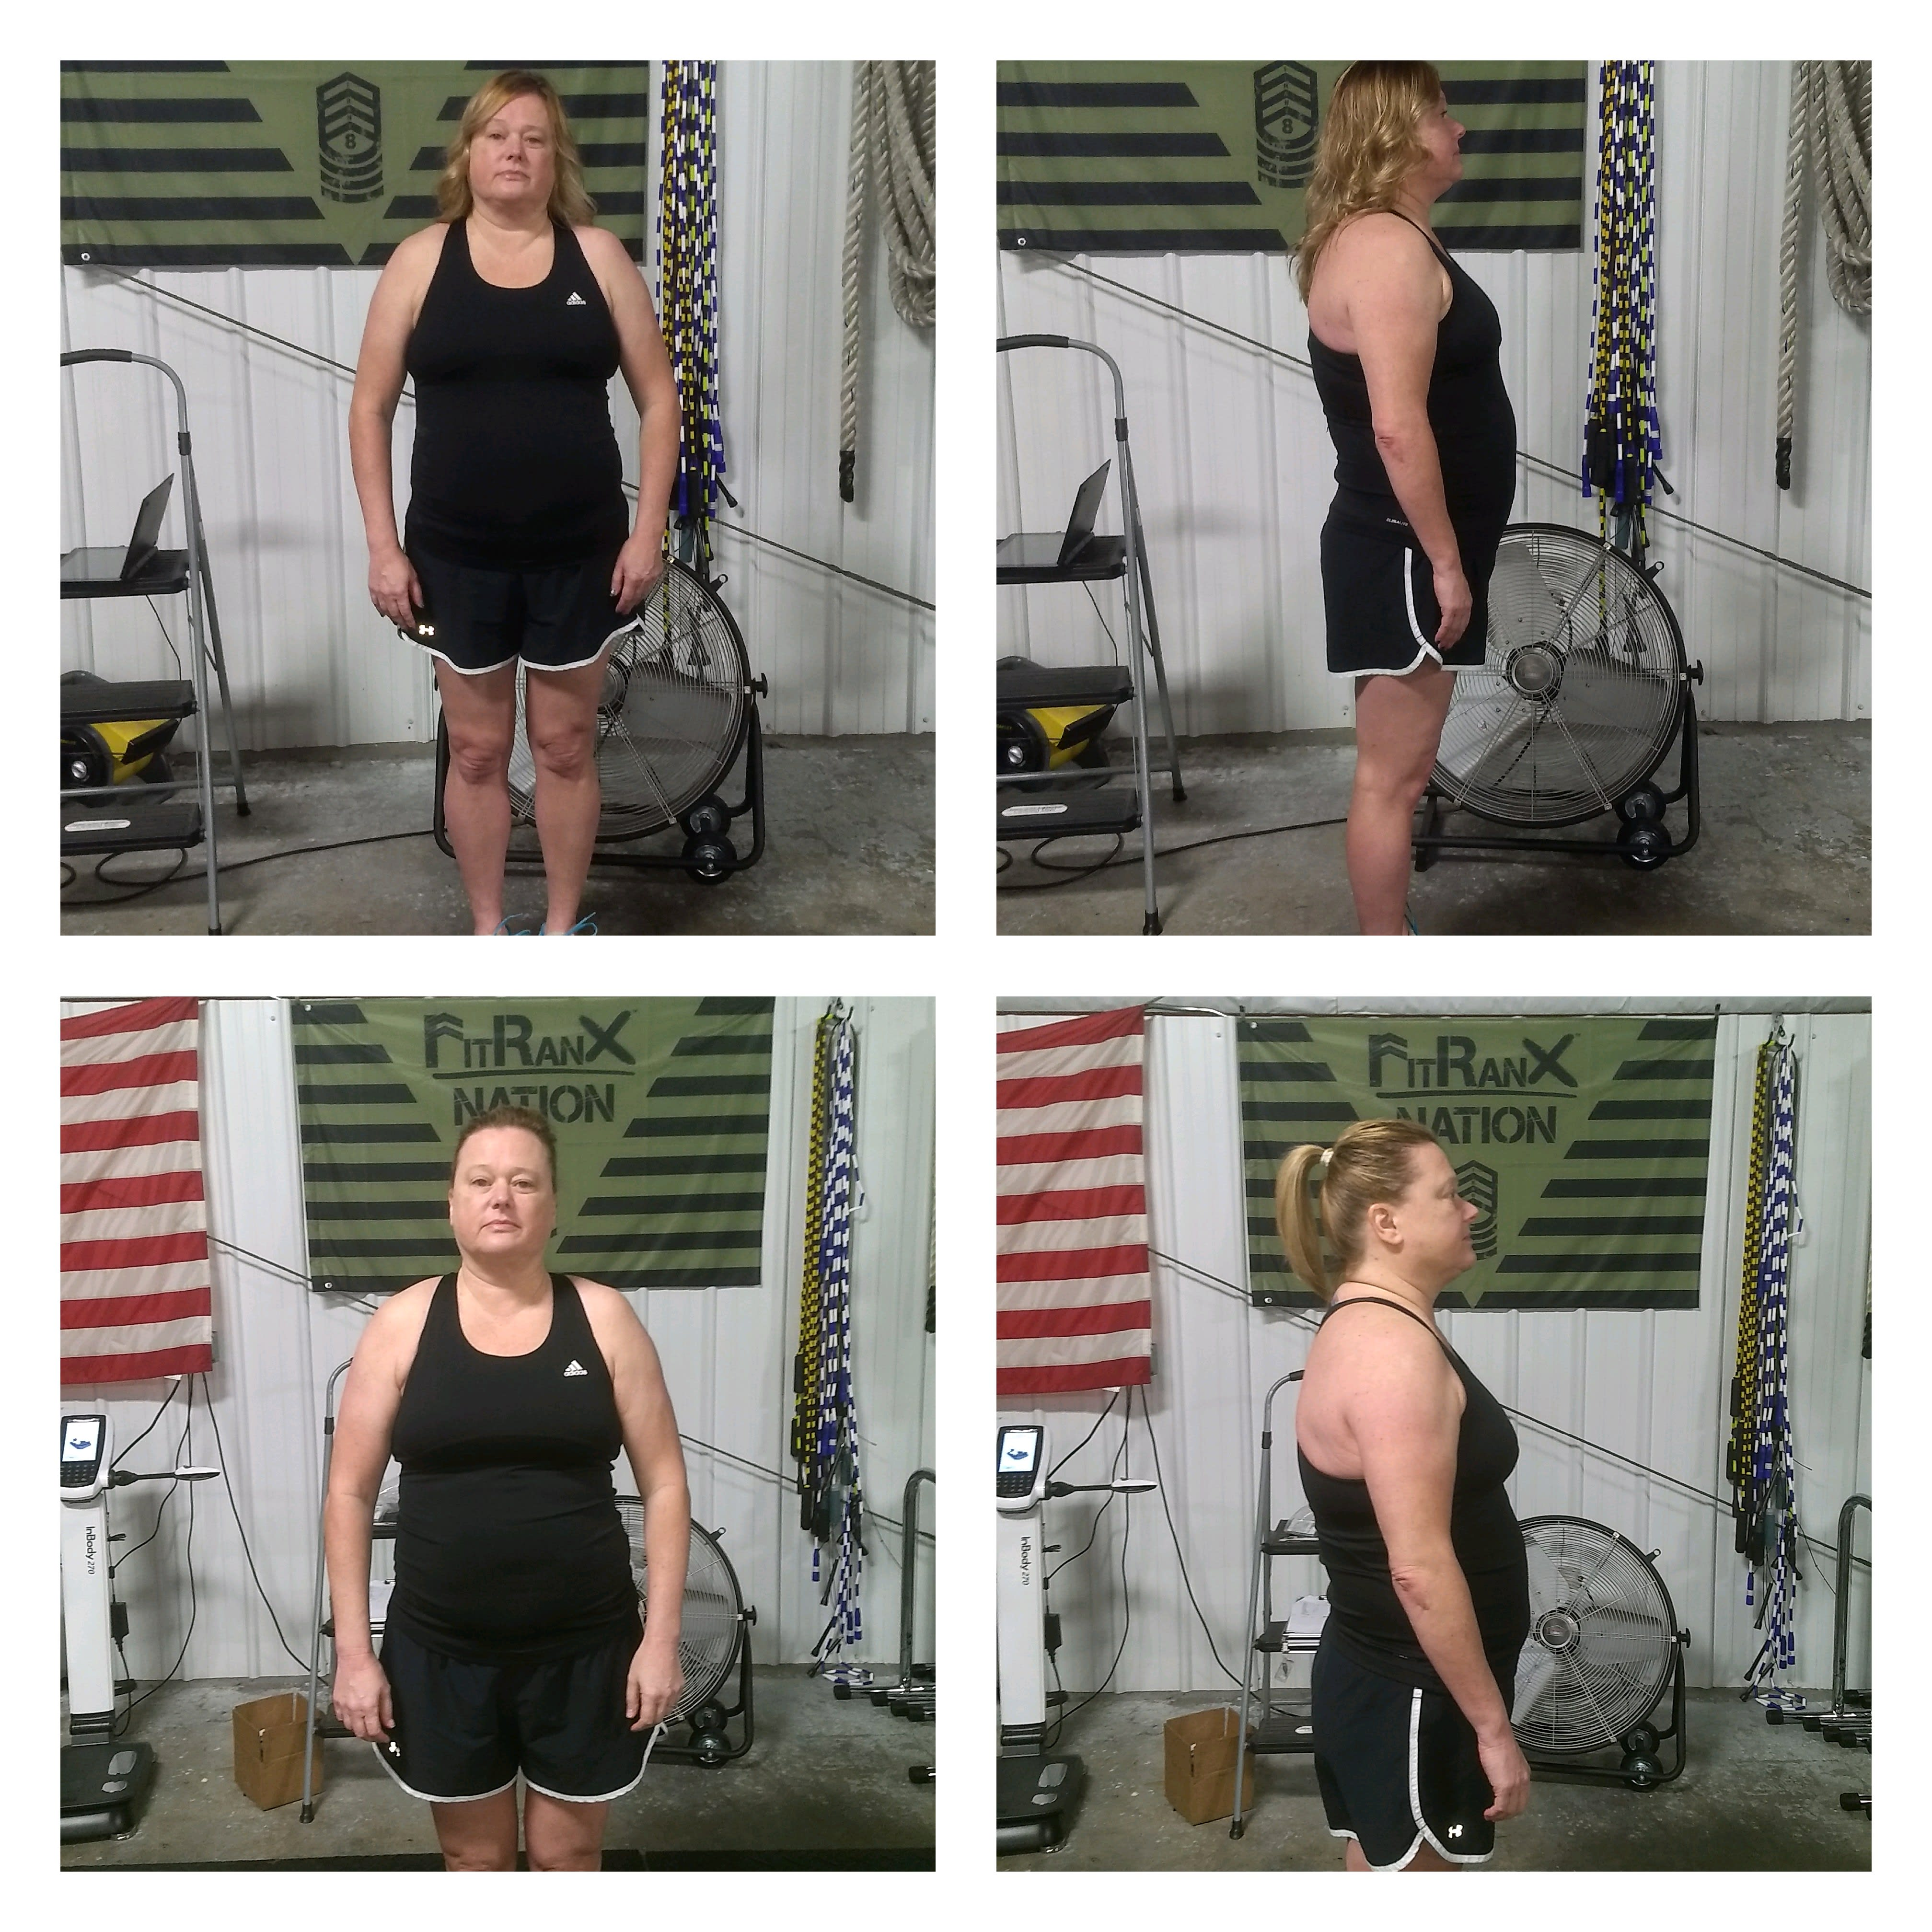 Bare Fitness Weightloss/Inches Loss/Tone/ Strength in 6 weeks